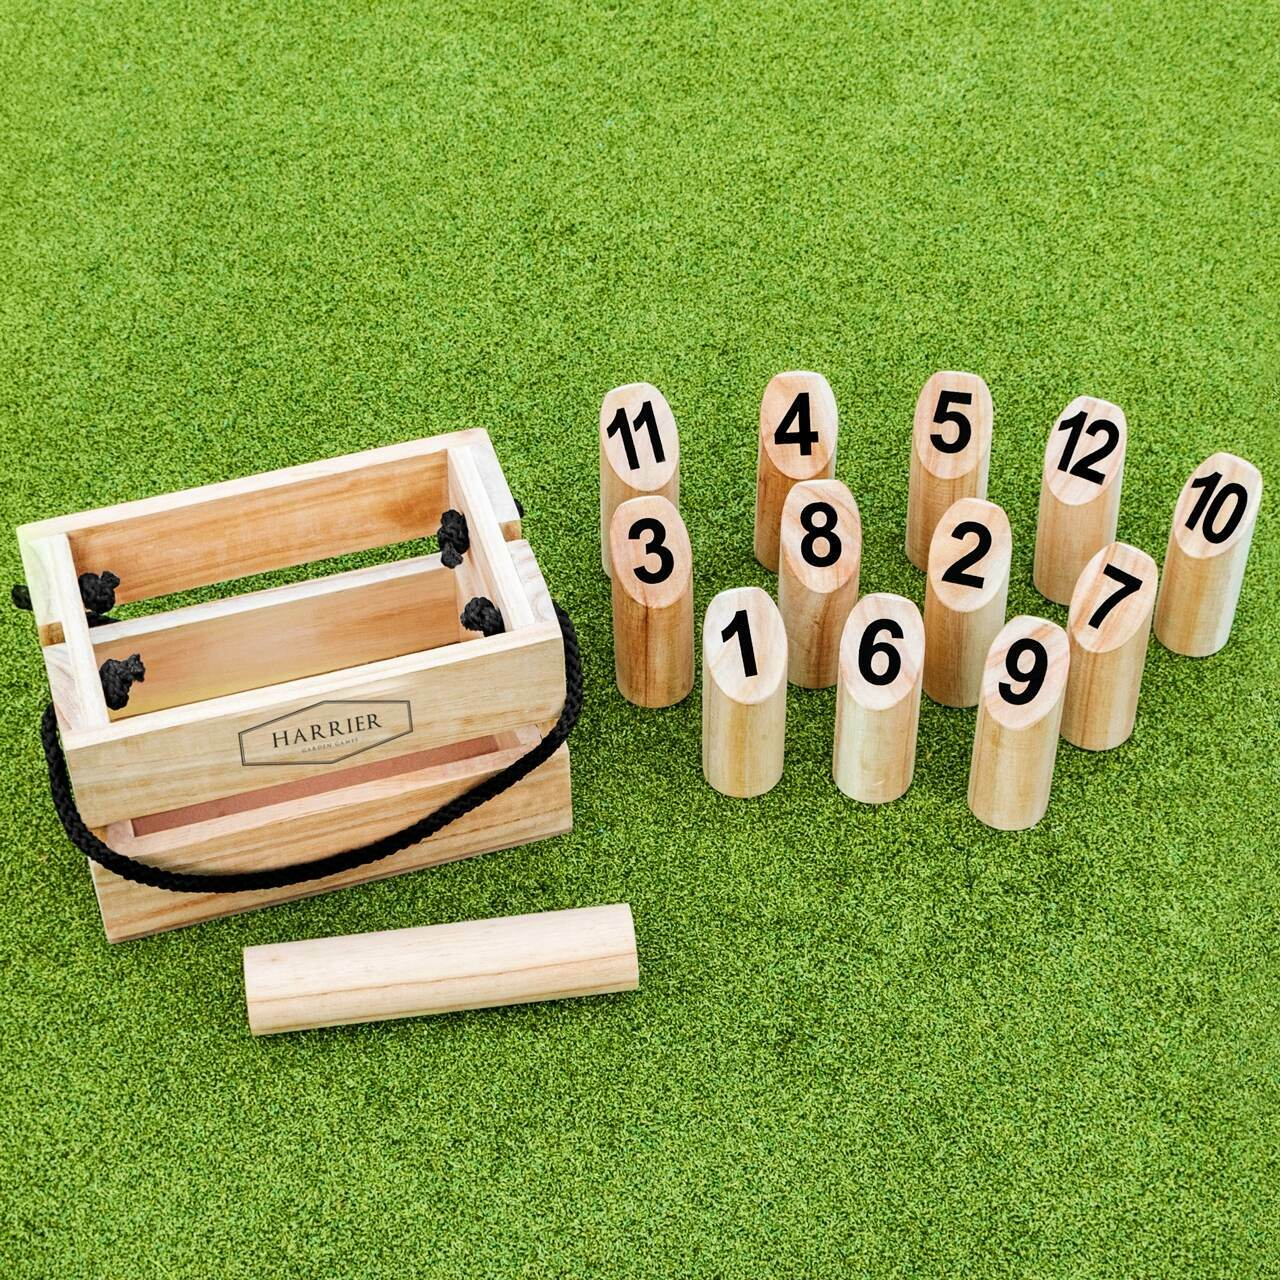 Number Kubb/ Finska Skittles Game Set